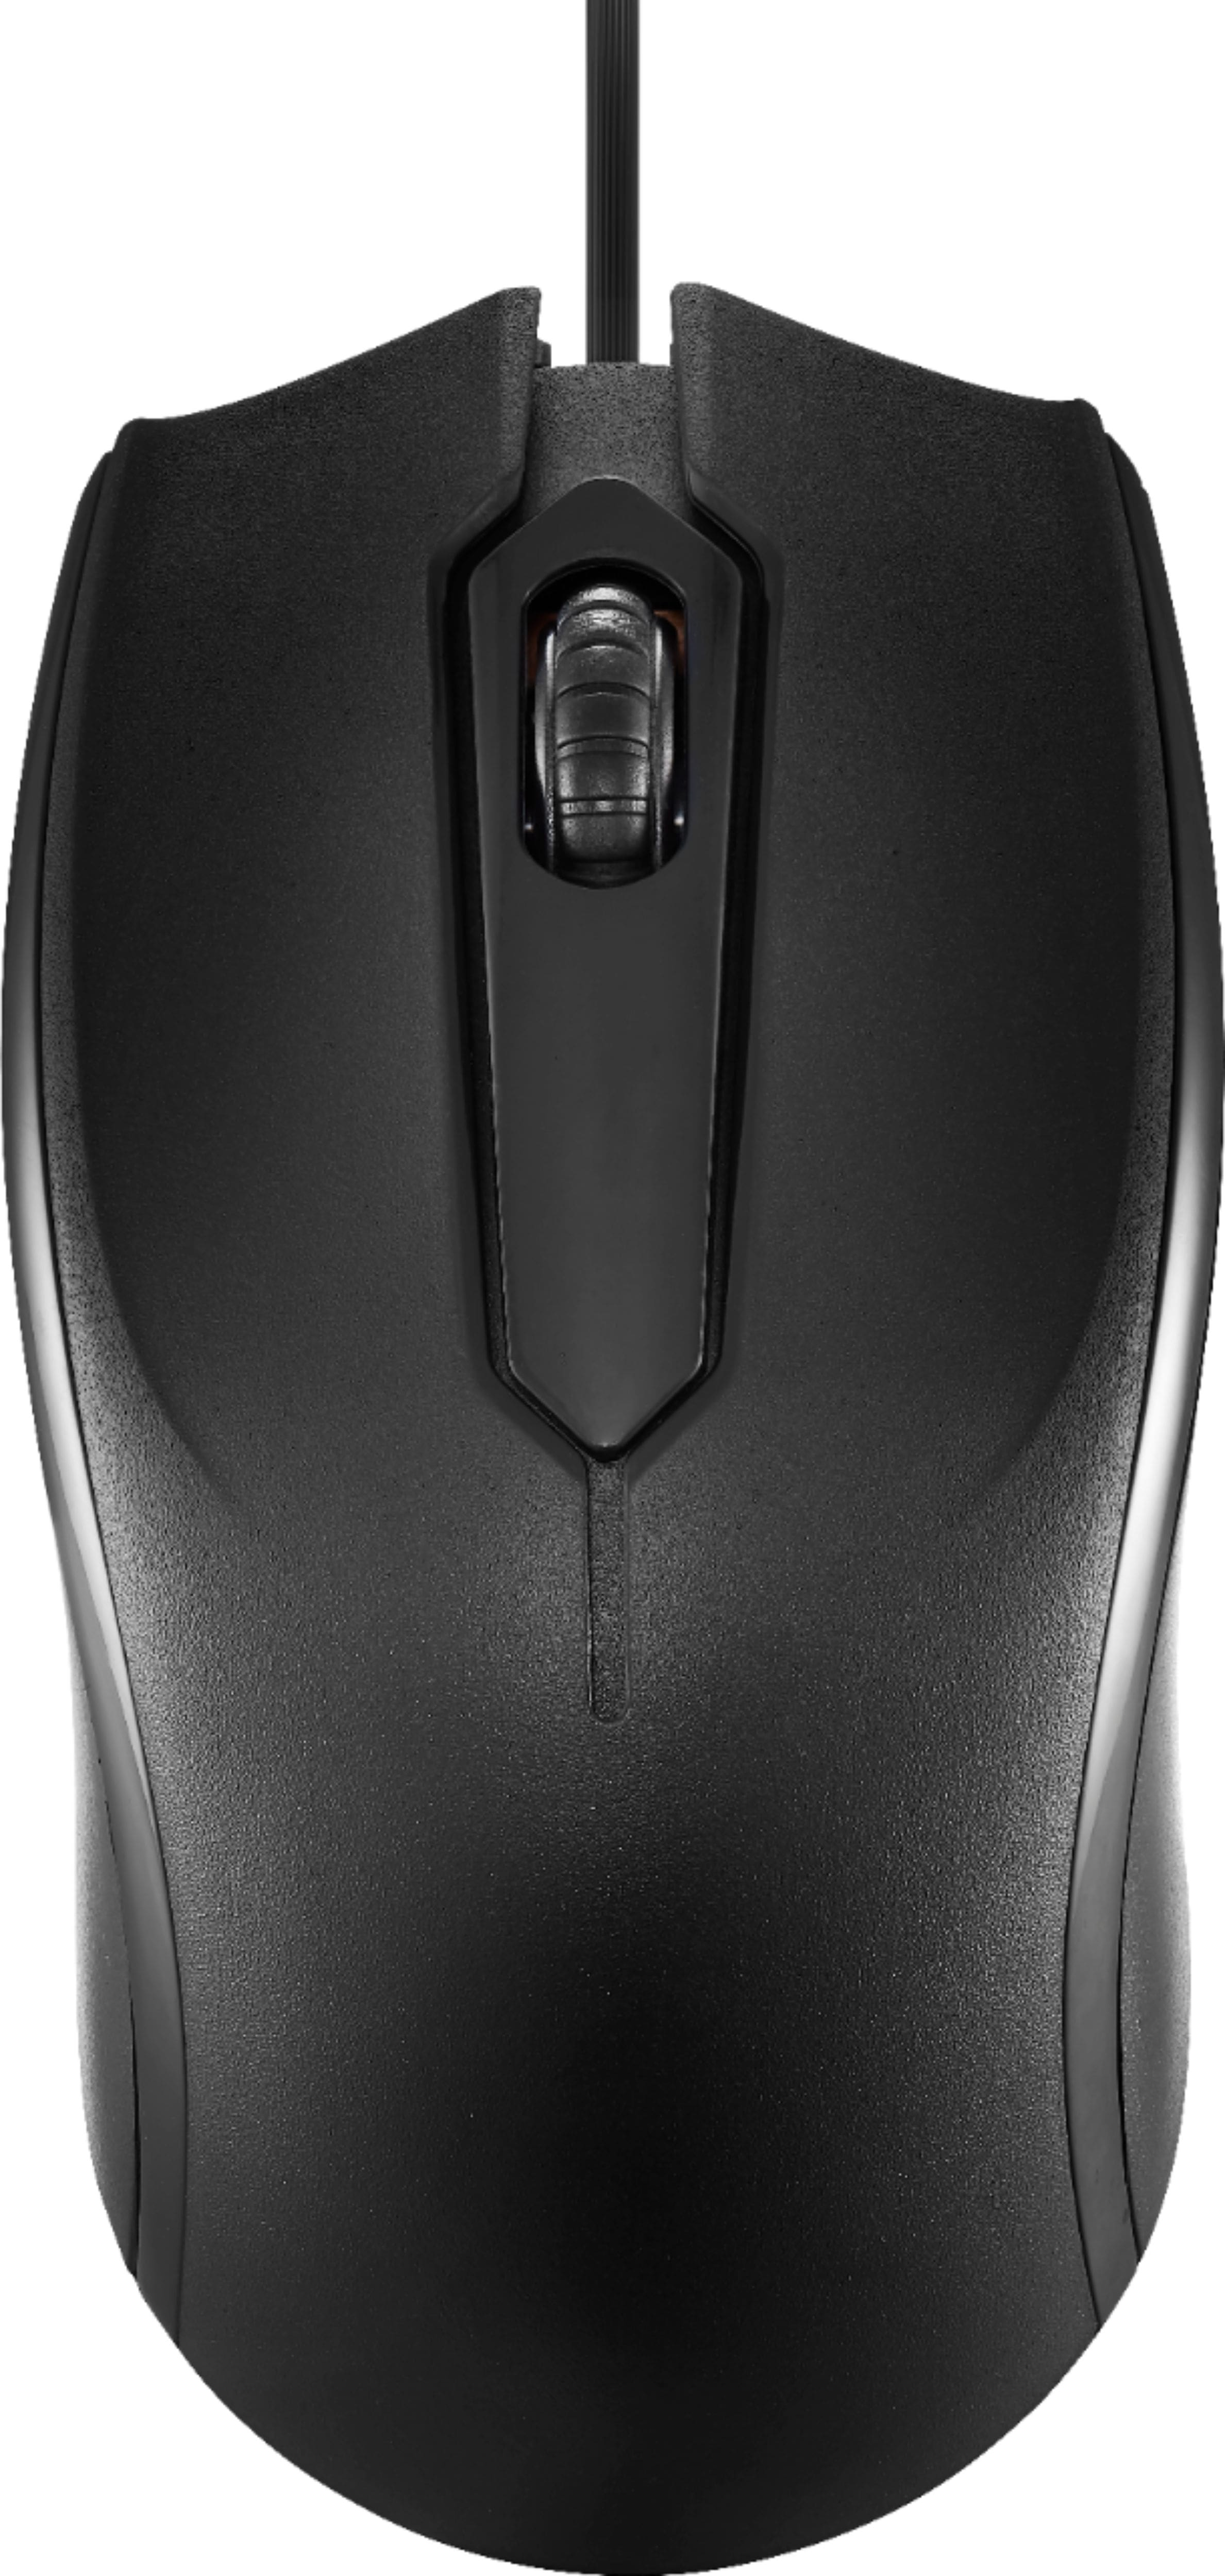 Dynex Wired Optical Mouse (Black)